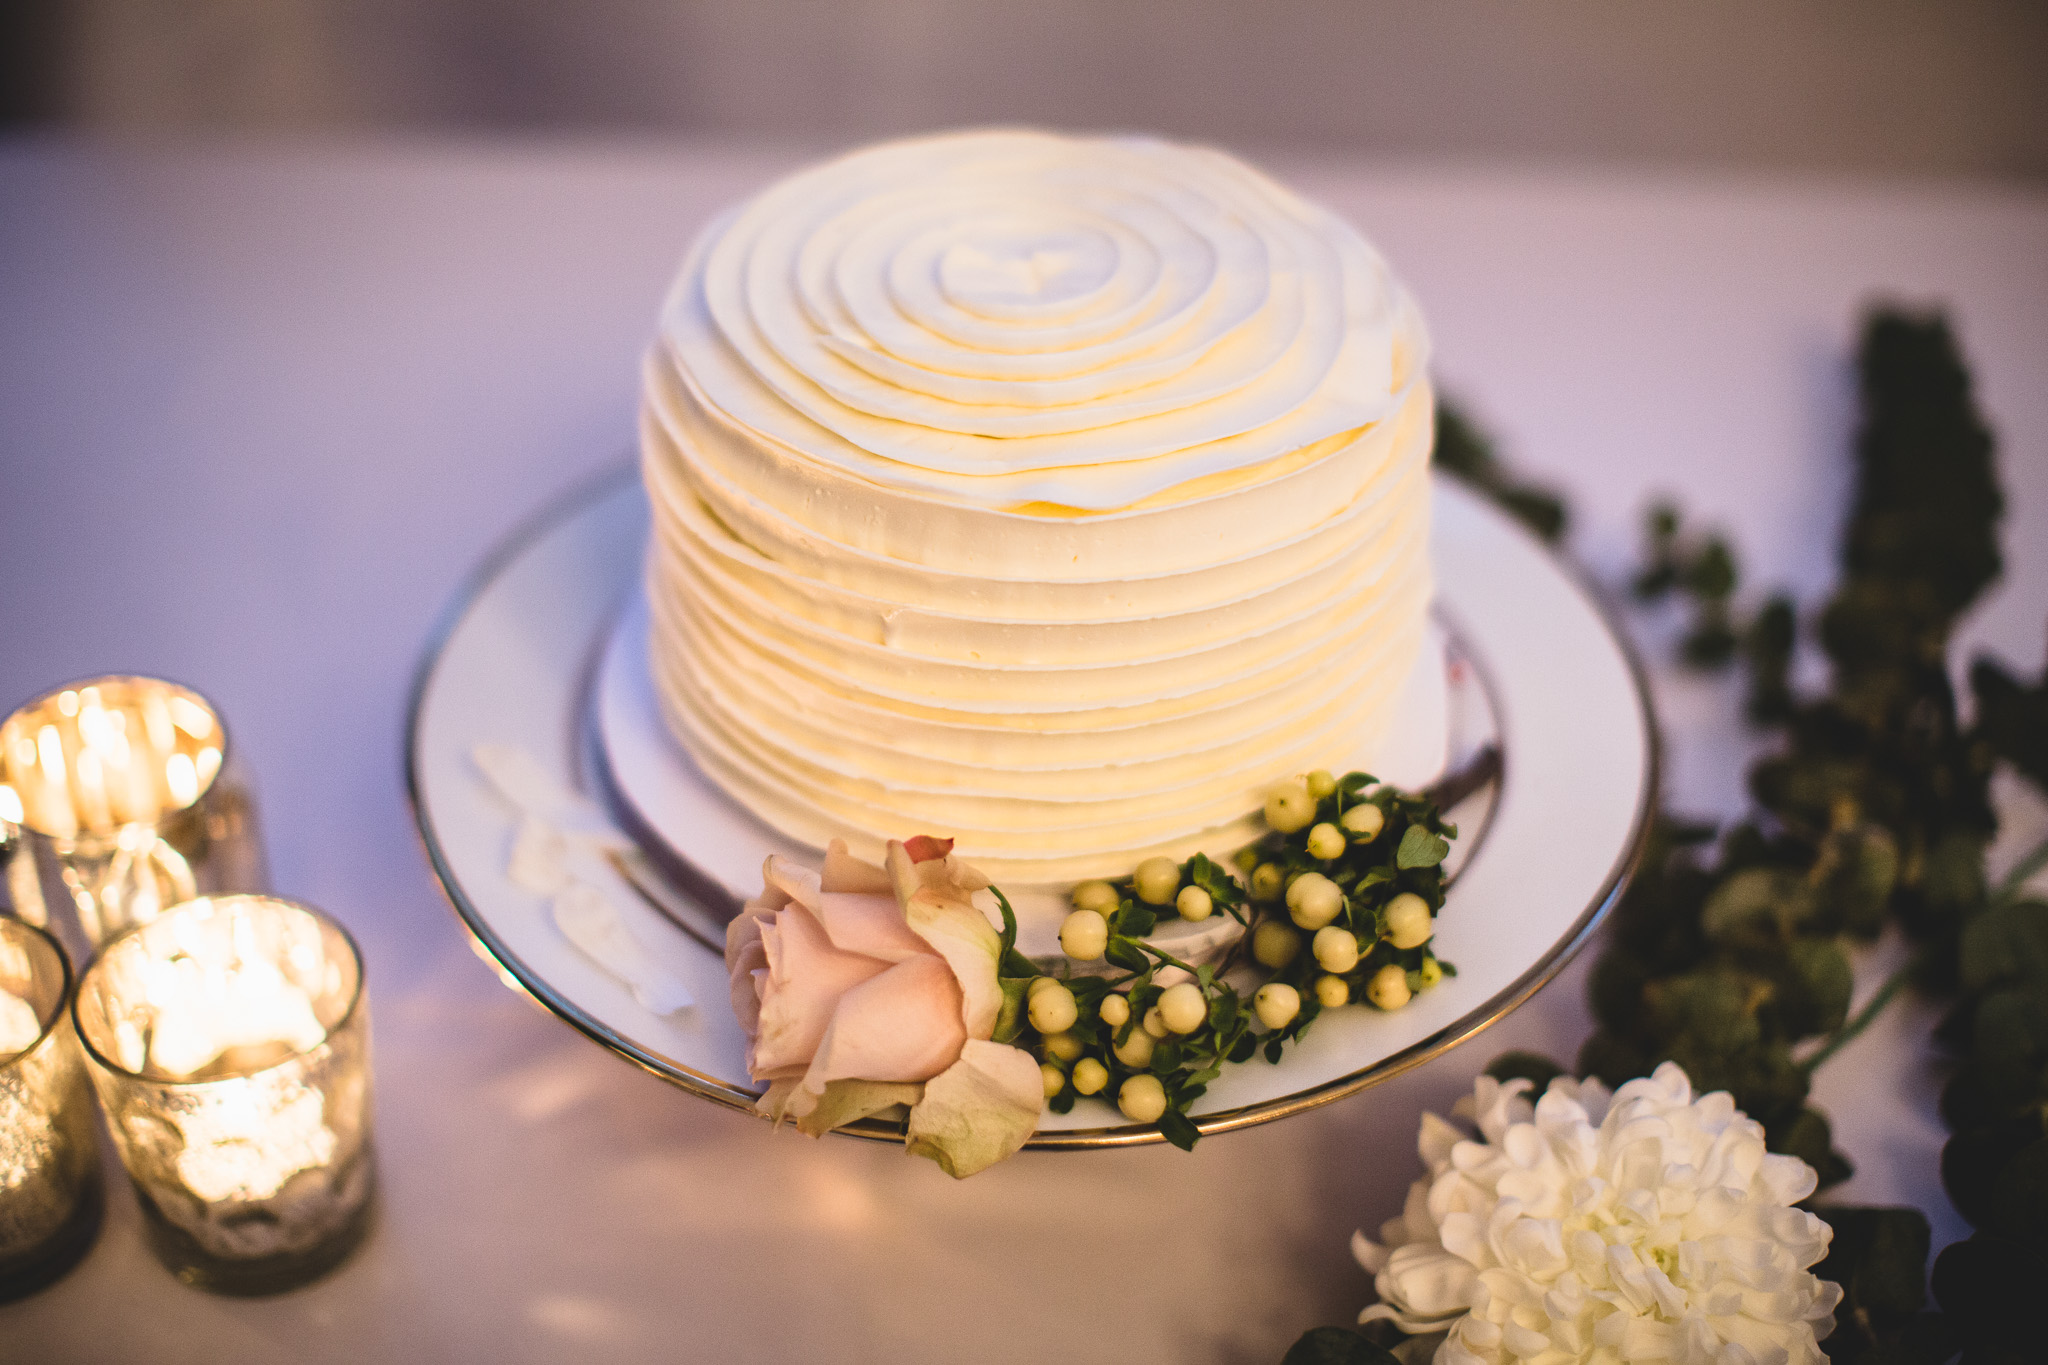 thimble-cakes-wedding-cake